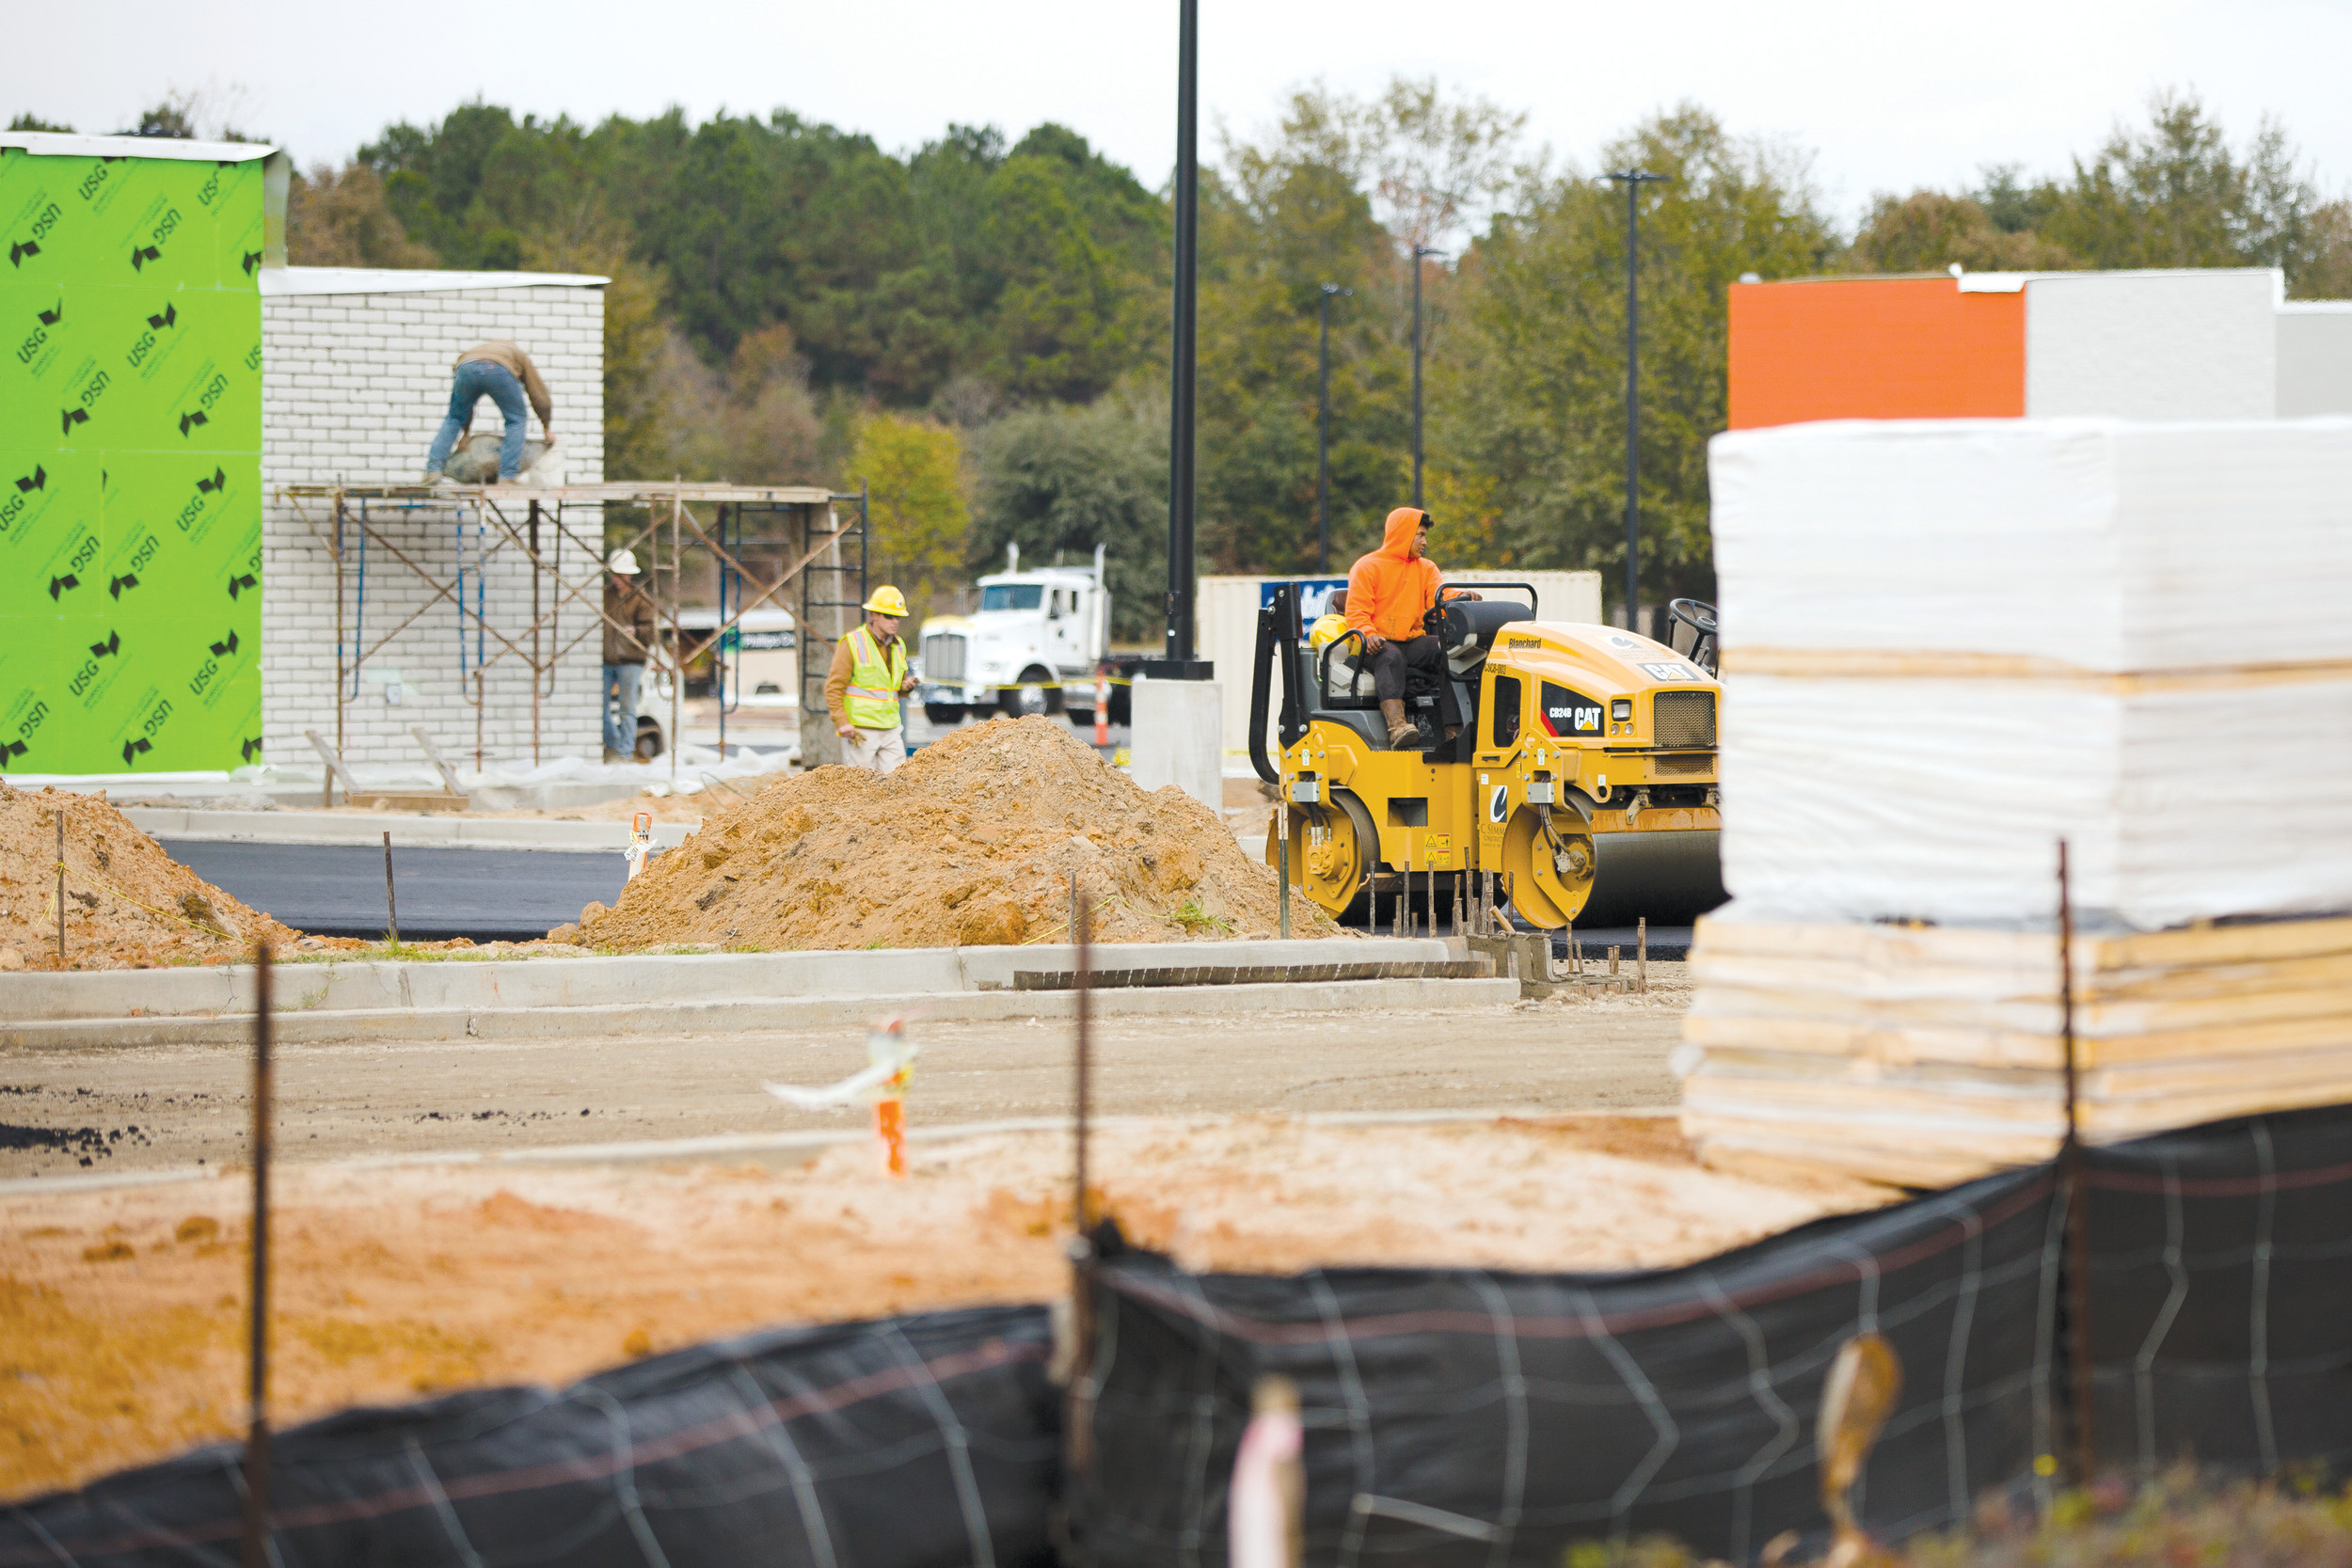 A construction crew works on the new Walmart Neighborhood Market on Pinewood Road on Tuesday afternoon. The store is hiring 125 people for jobs ranging from clerks to pharmacy positions and has a hiring center at 19 Pinewood Road, Suite No. 3.